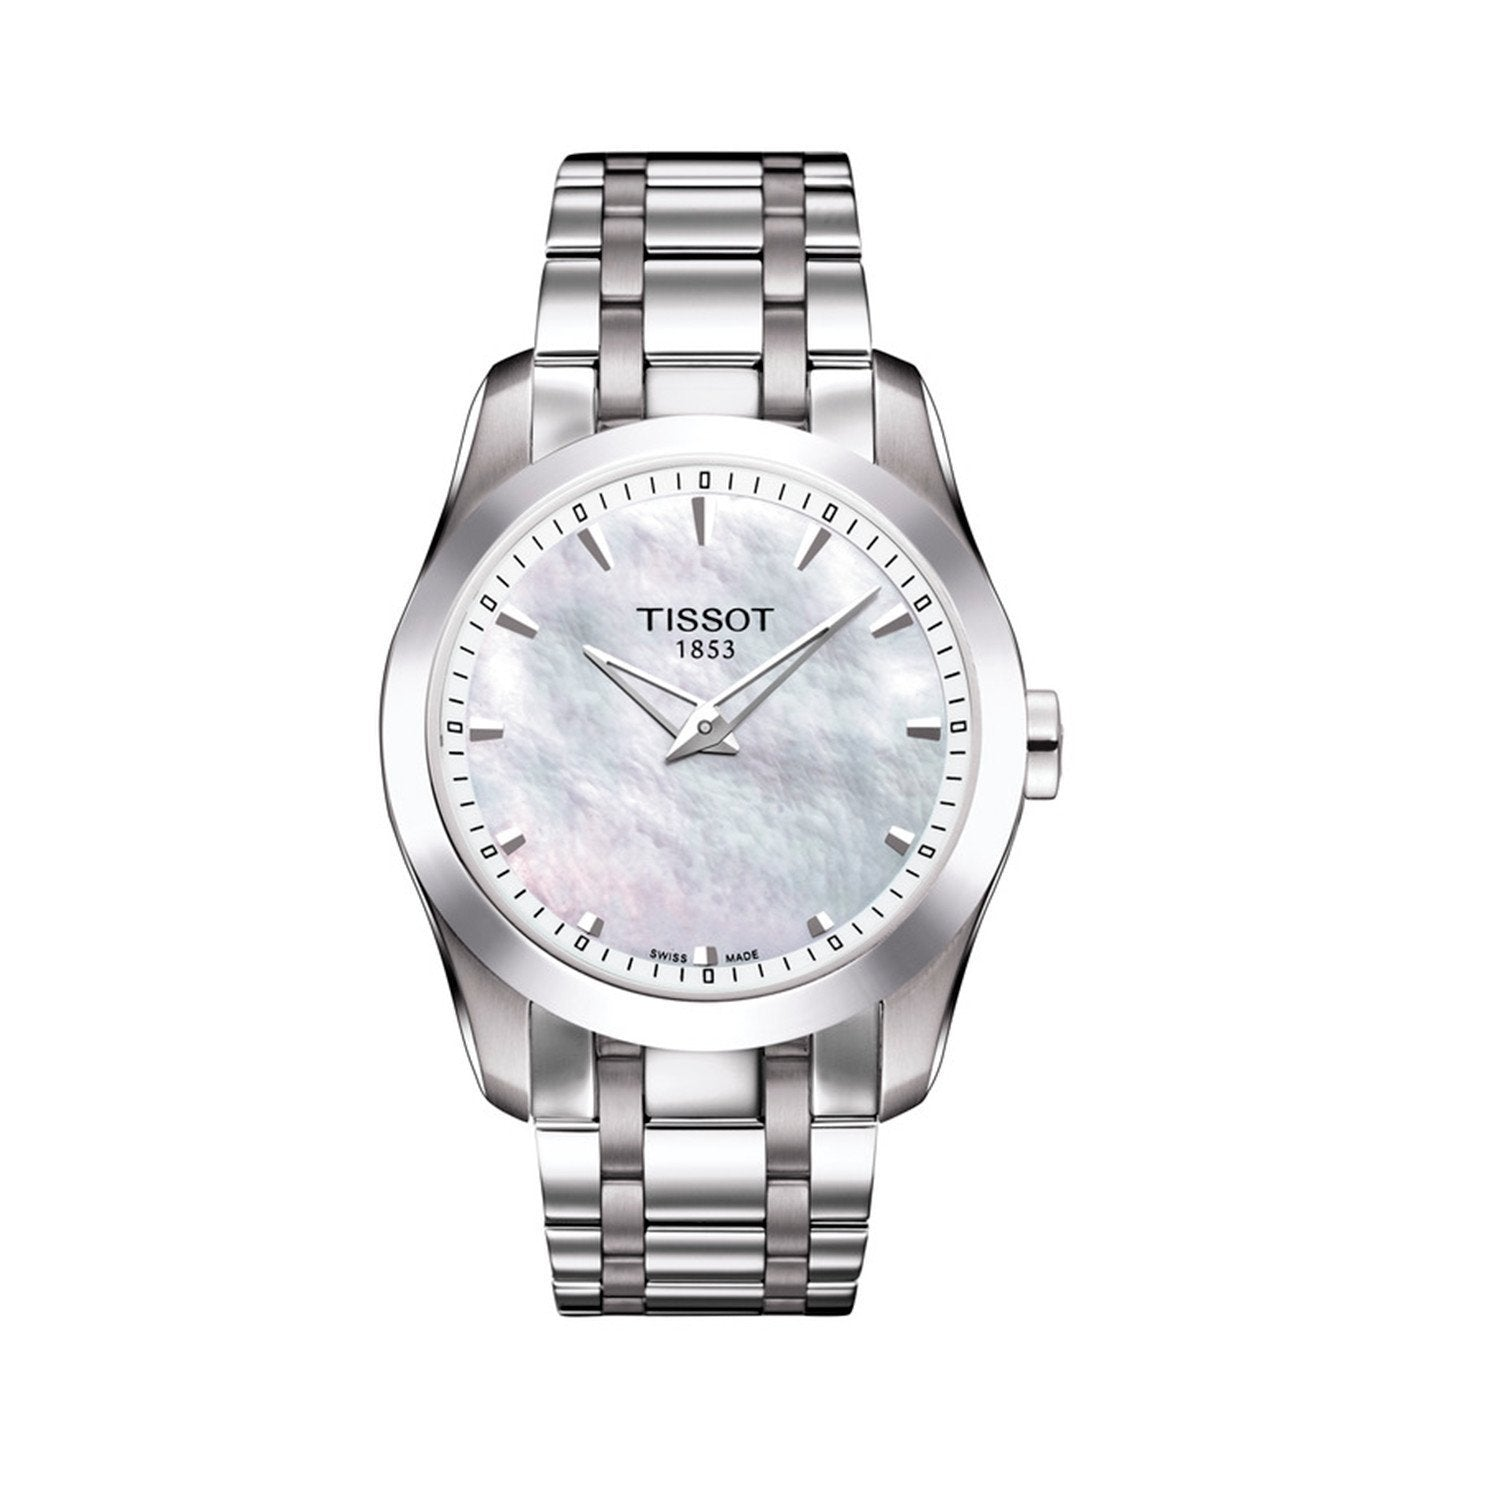 Tissot Couturier Date Steel - Watches & Crystals